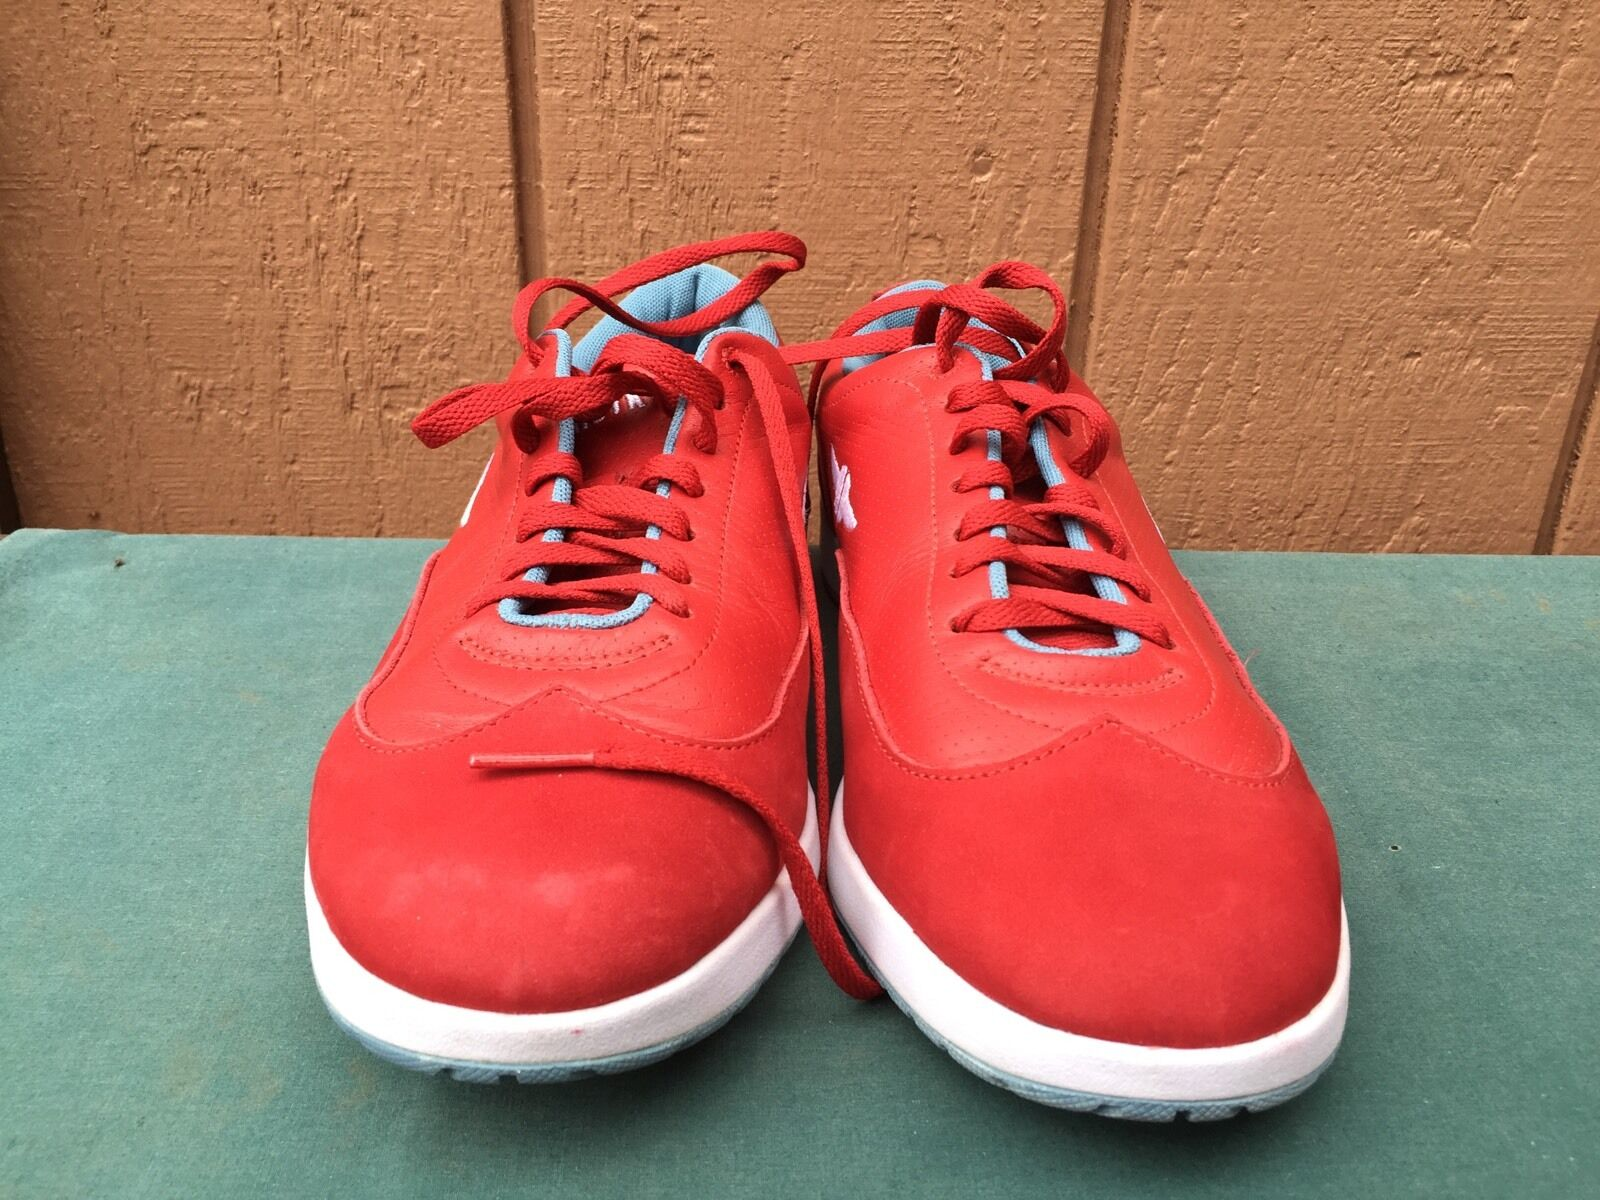 RARE WOMEN'S HEROYK SHOES RED LEATHER RUNNING SNEAKERS US SIZE 8